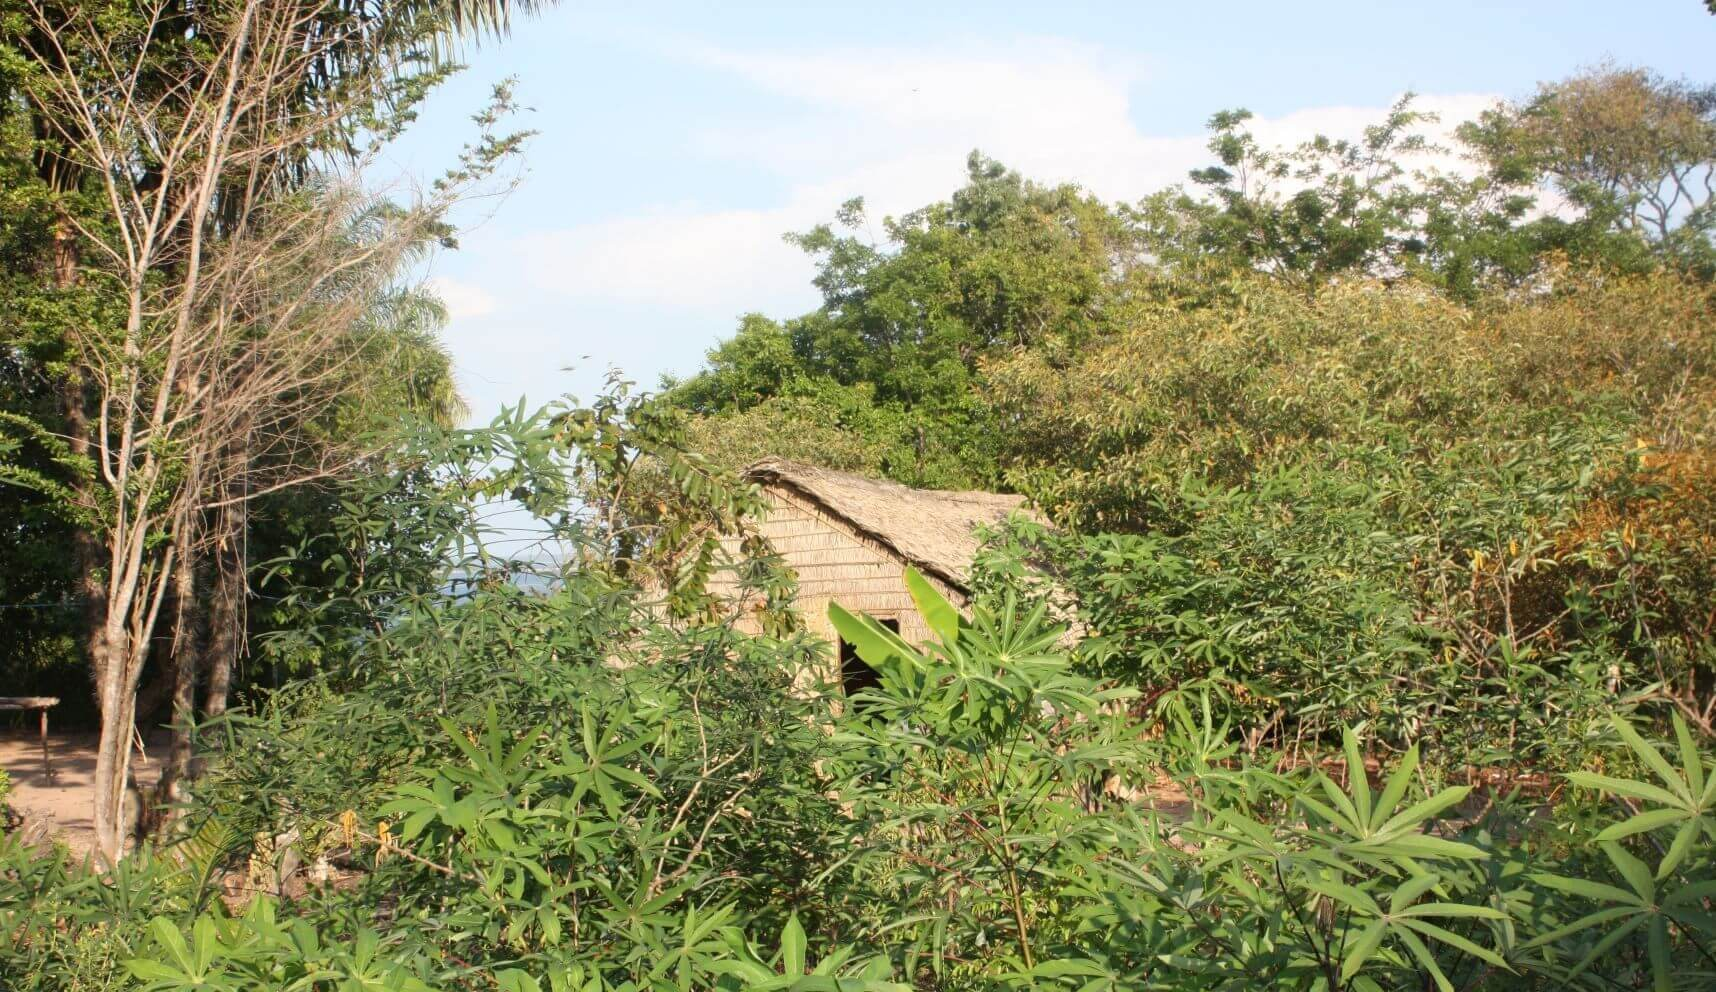 Analyzing word frequencies: Manioc plants surrounding a house